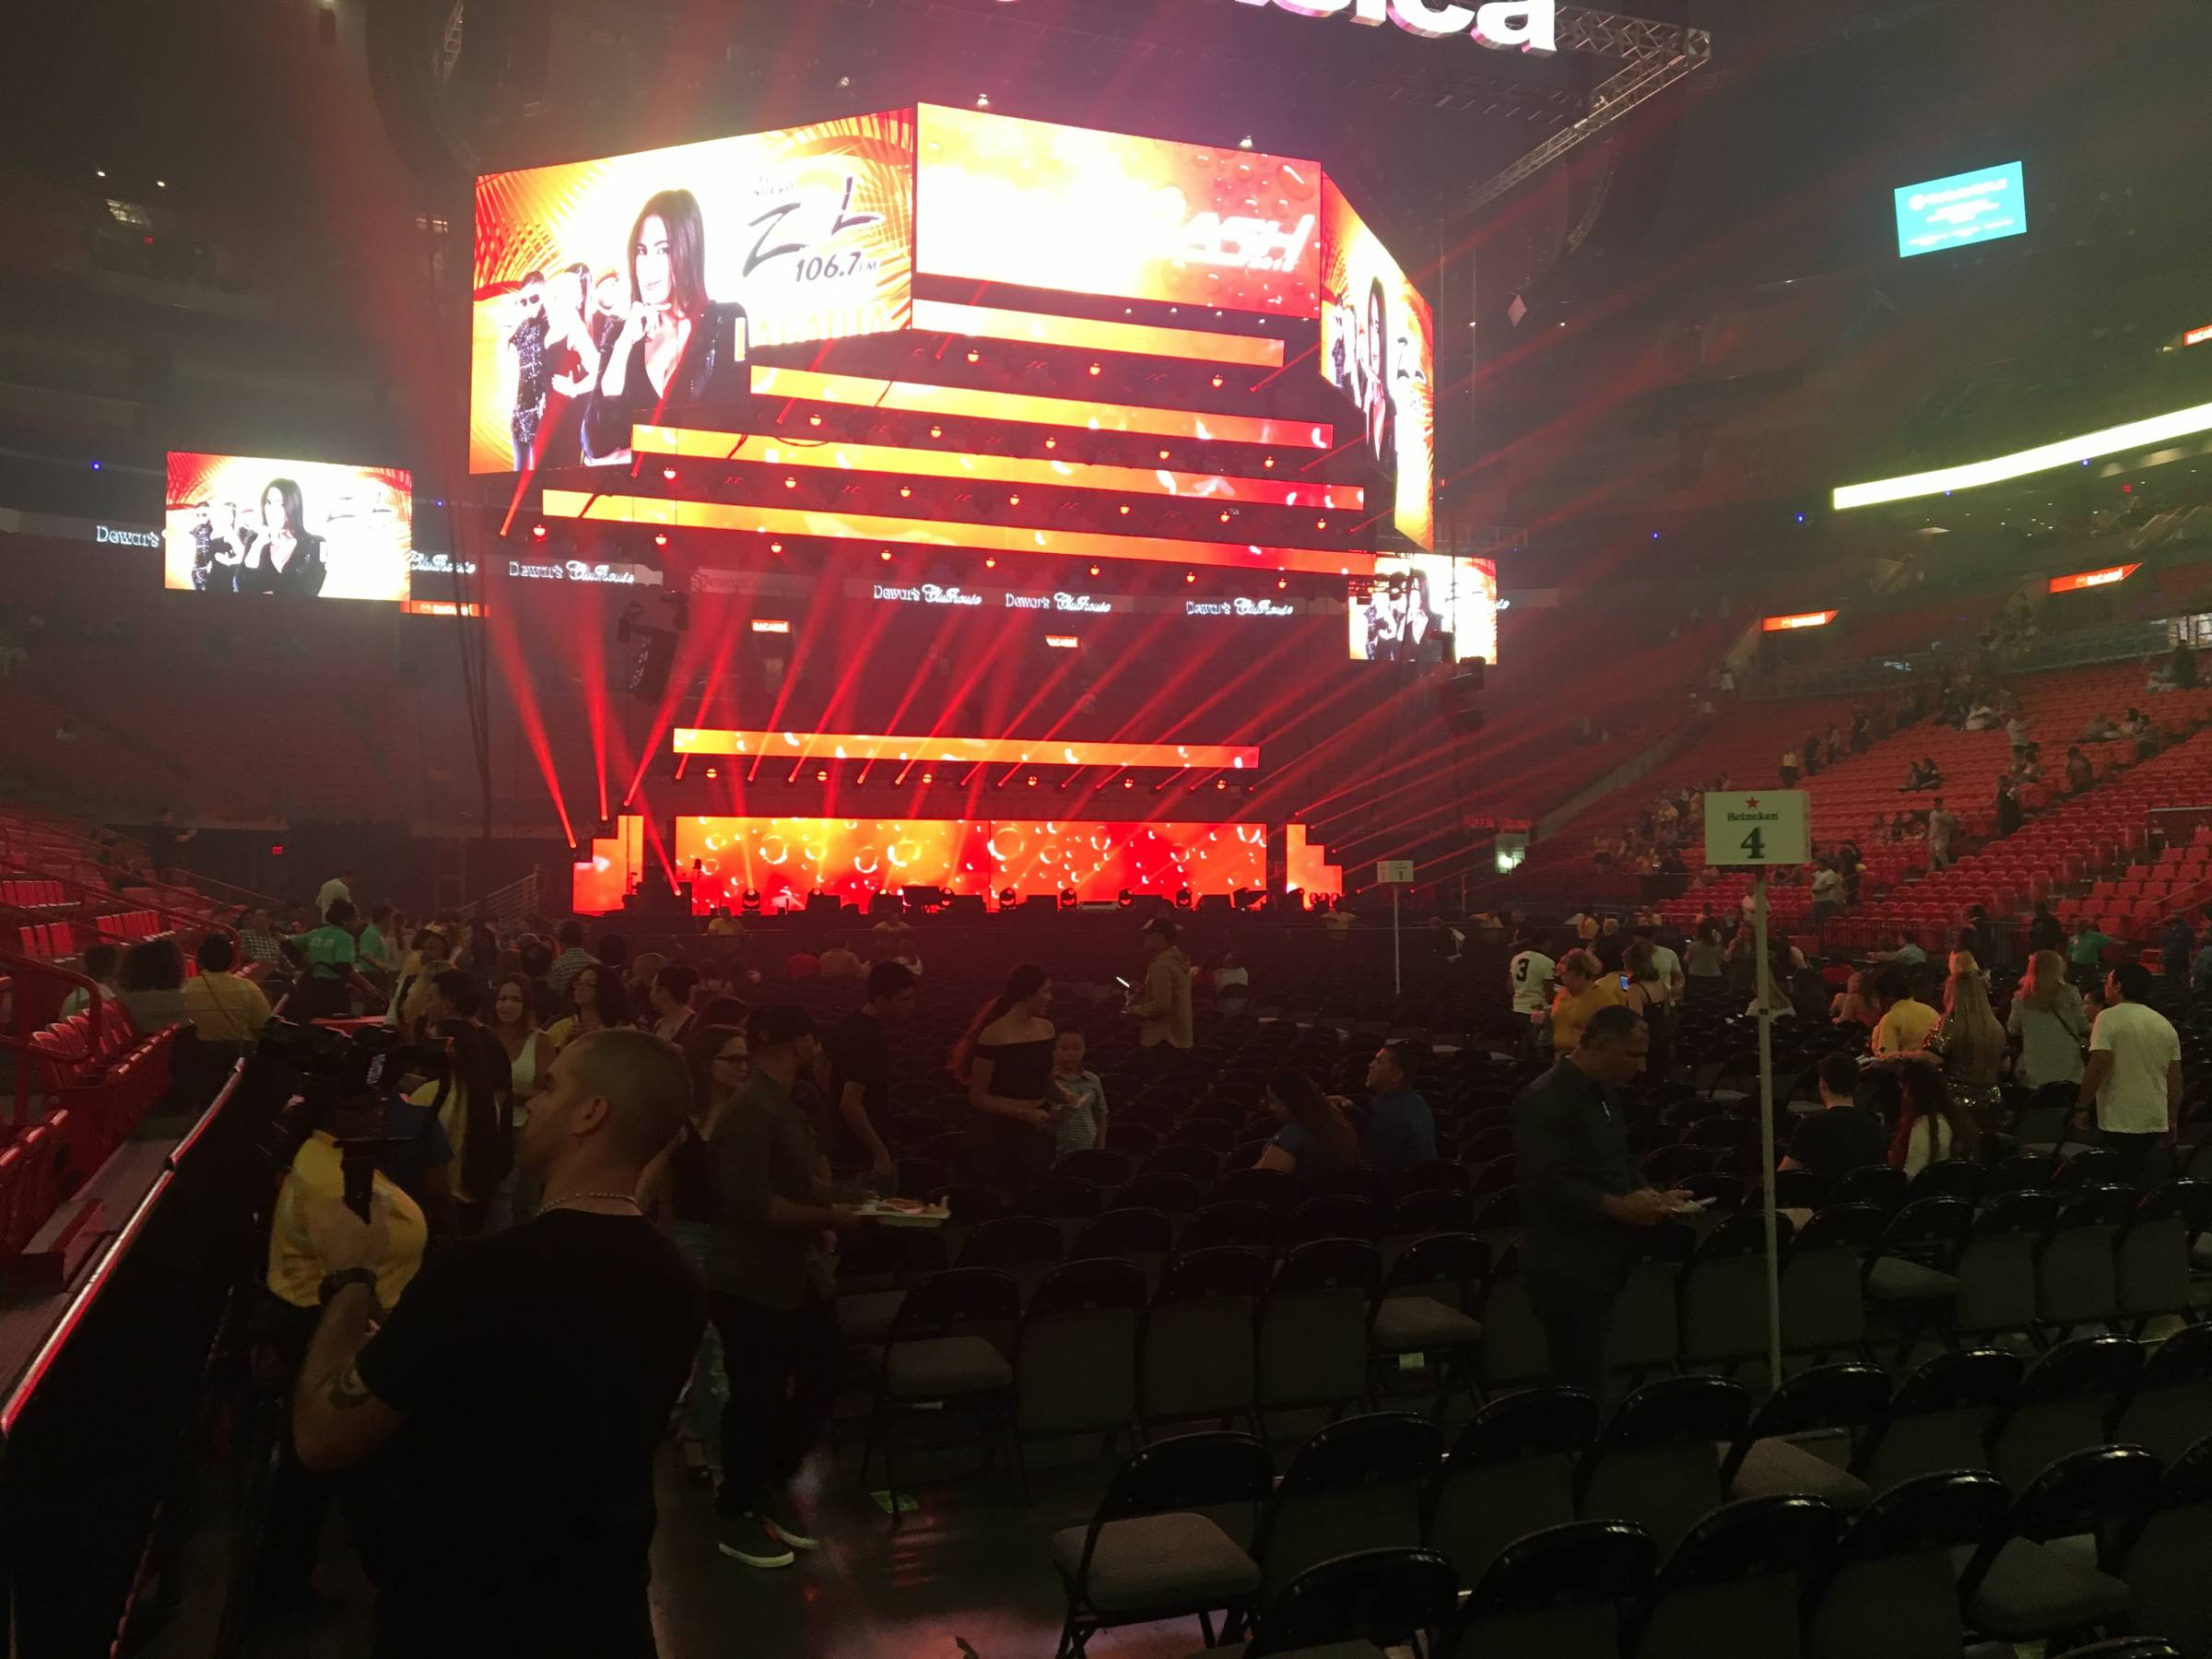 Back left floor at American Airlines Arena for Concert